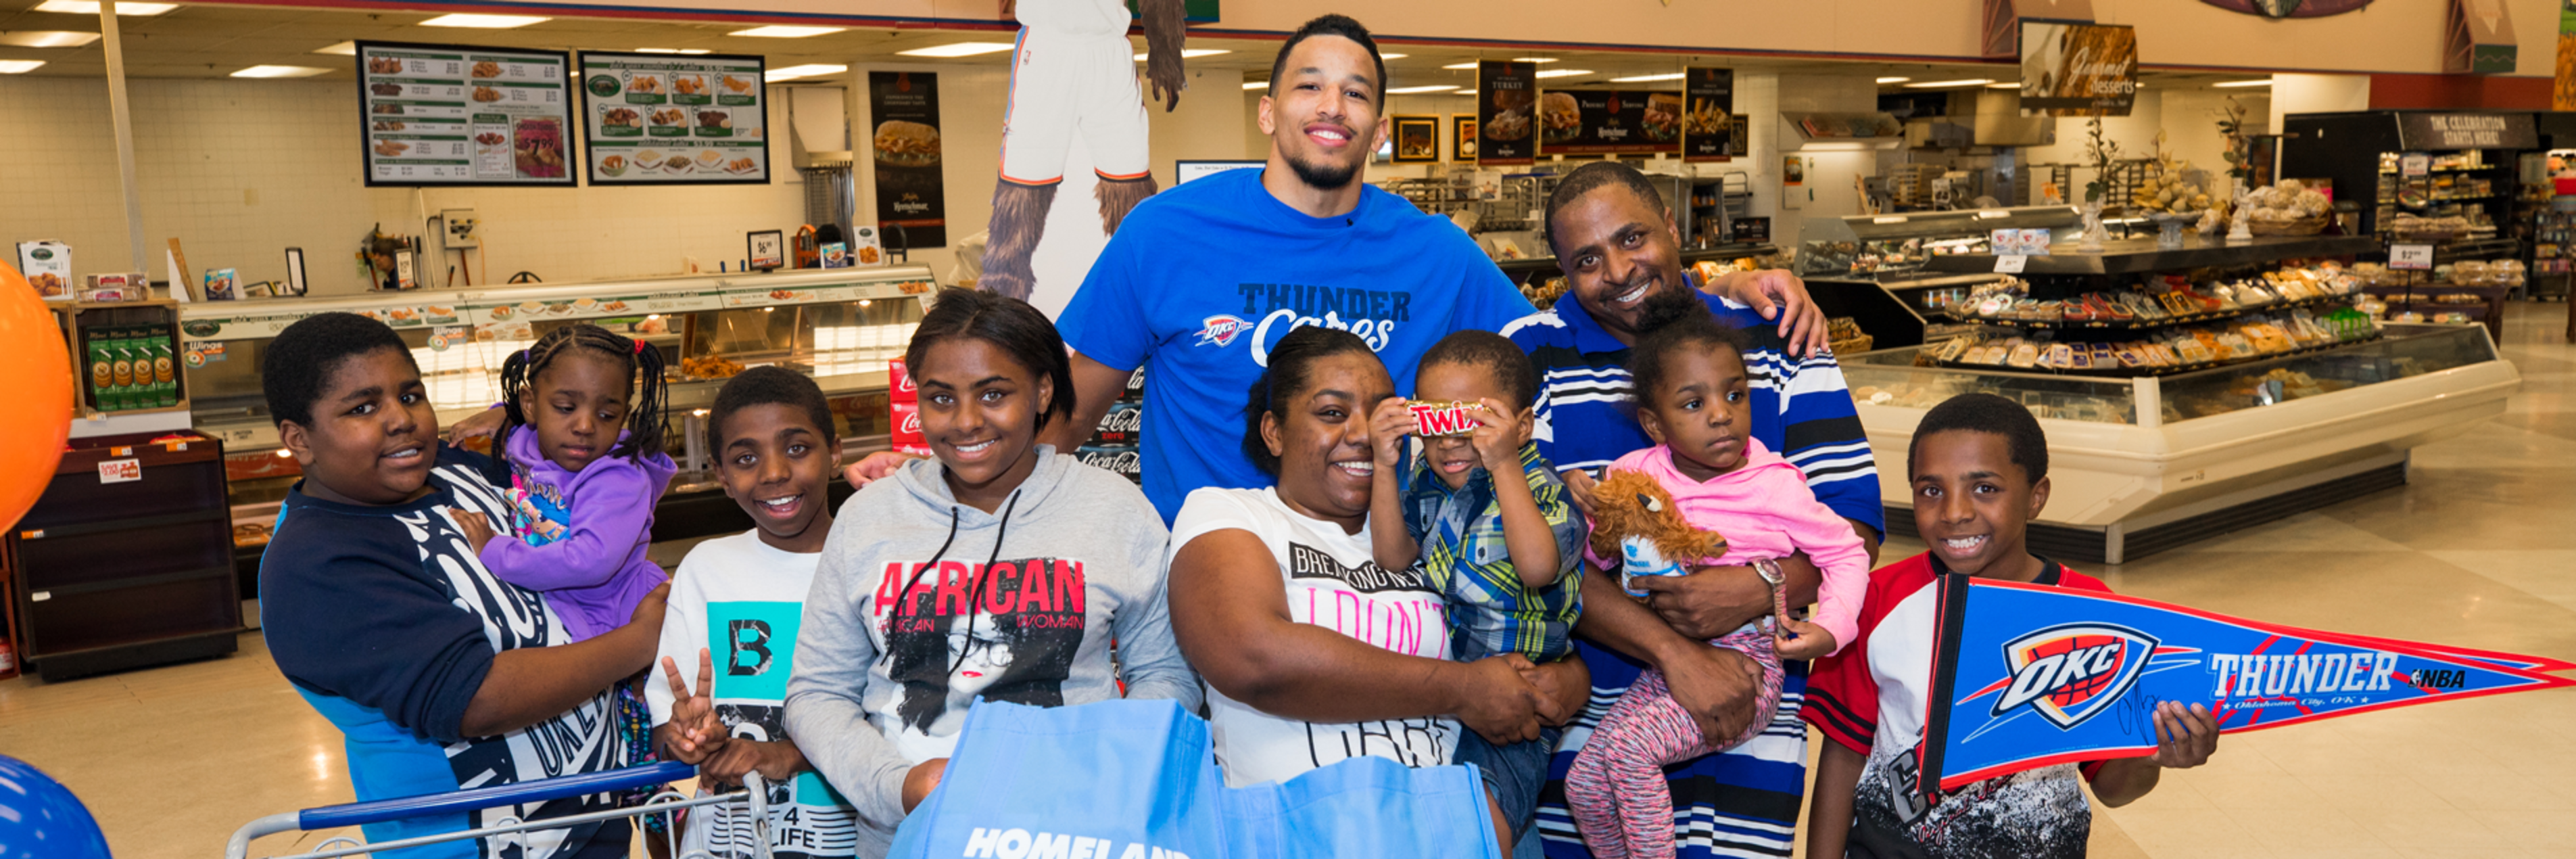 d79d7d46c Roberson delivers big assist hugs for family of nine oklahoma city thunder  png 3810x1270 Andre roberson